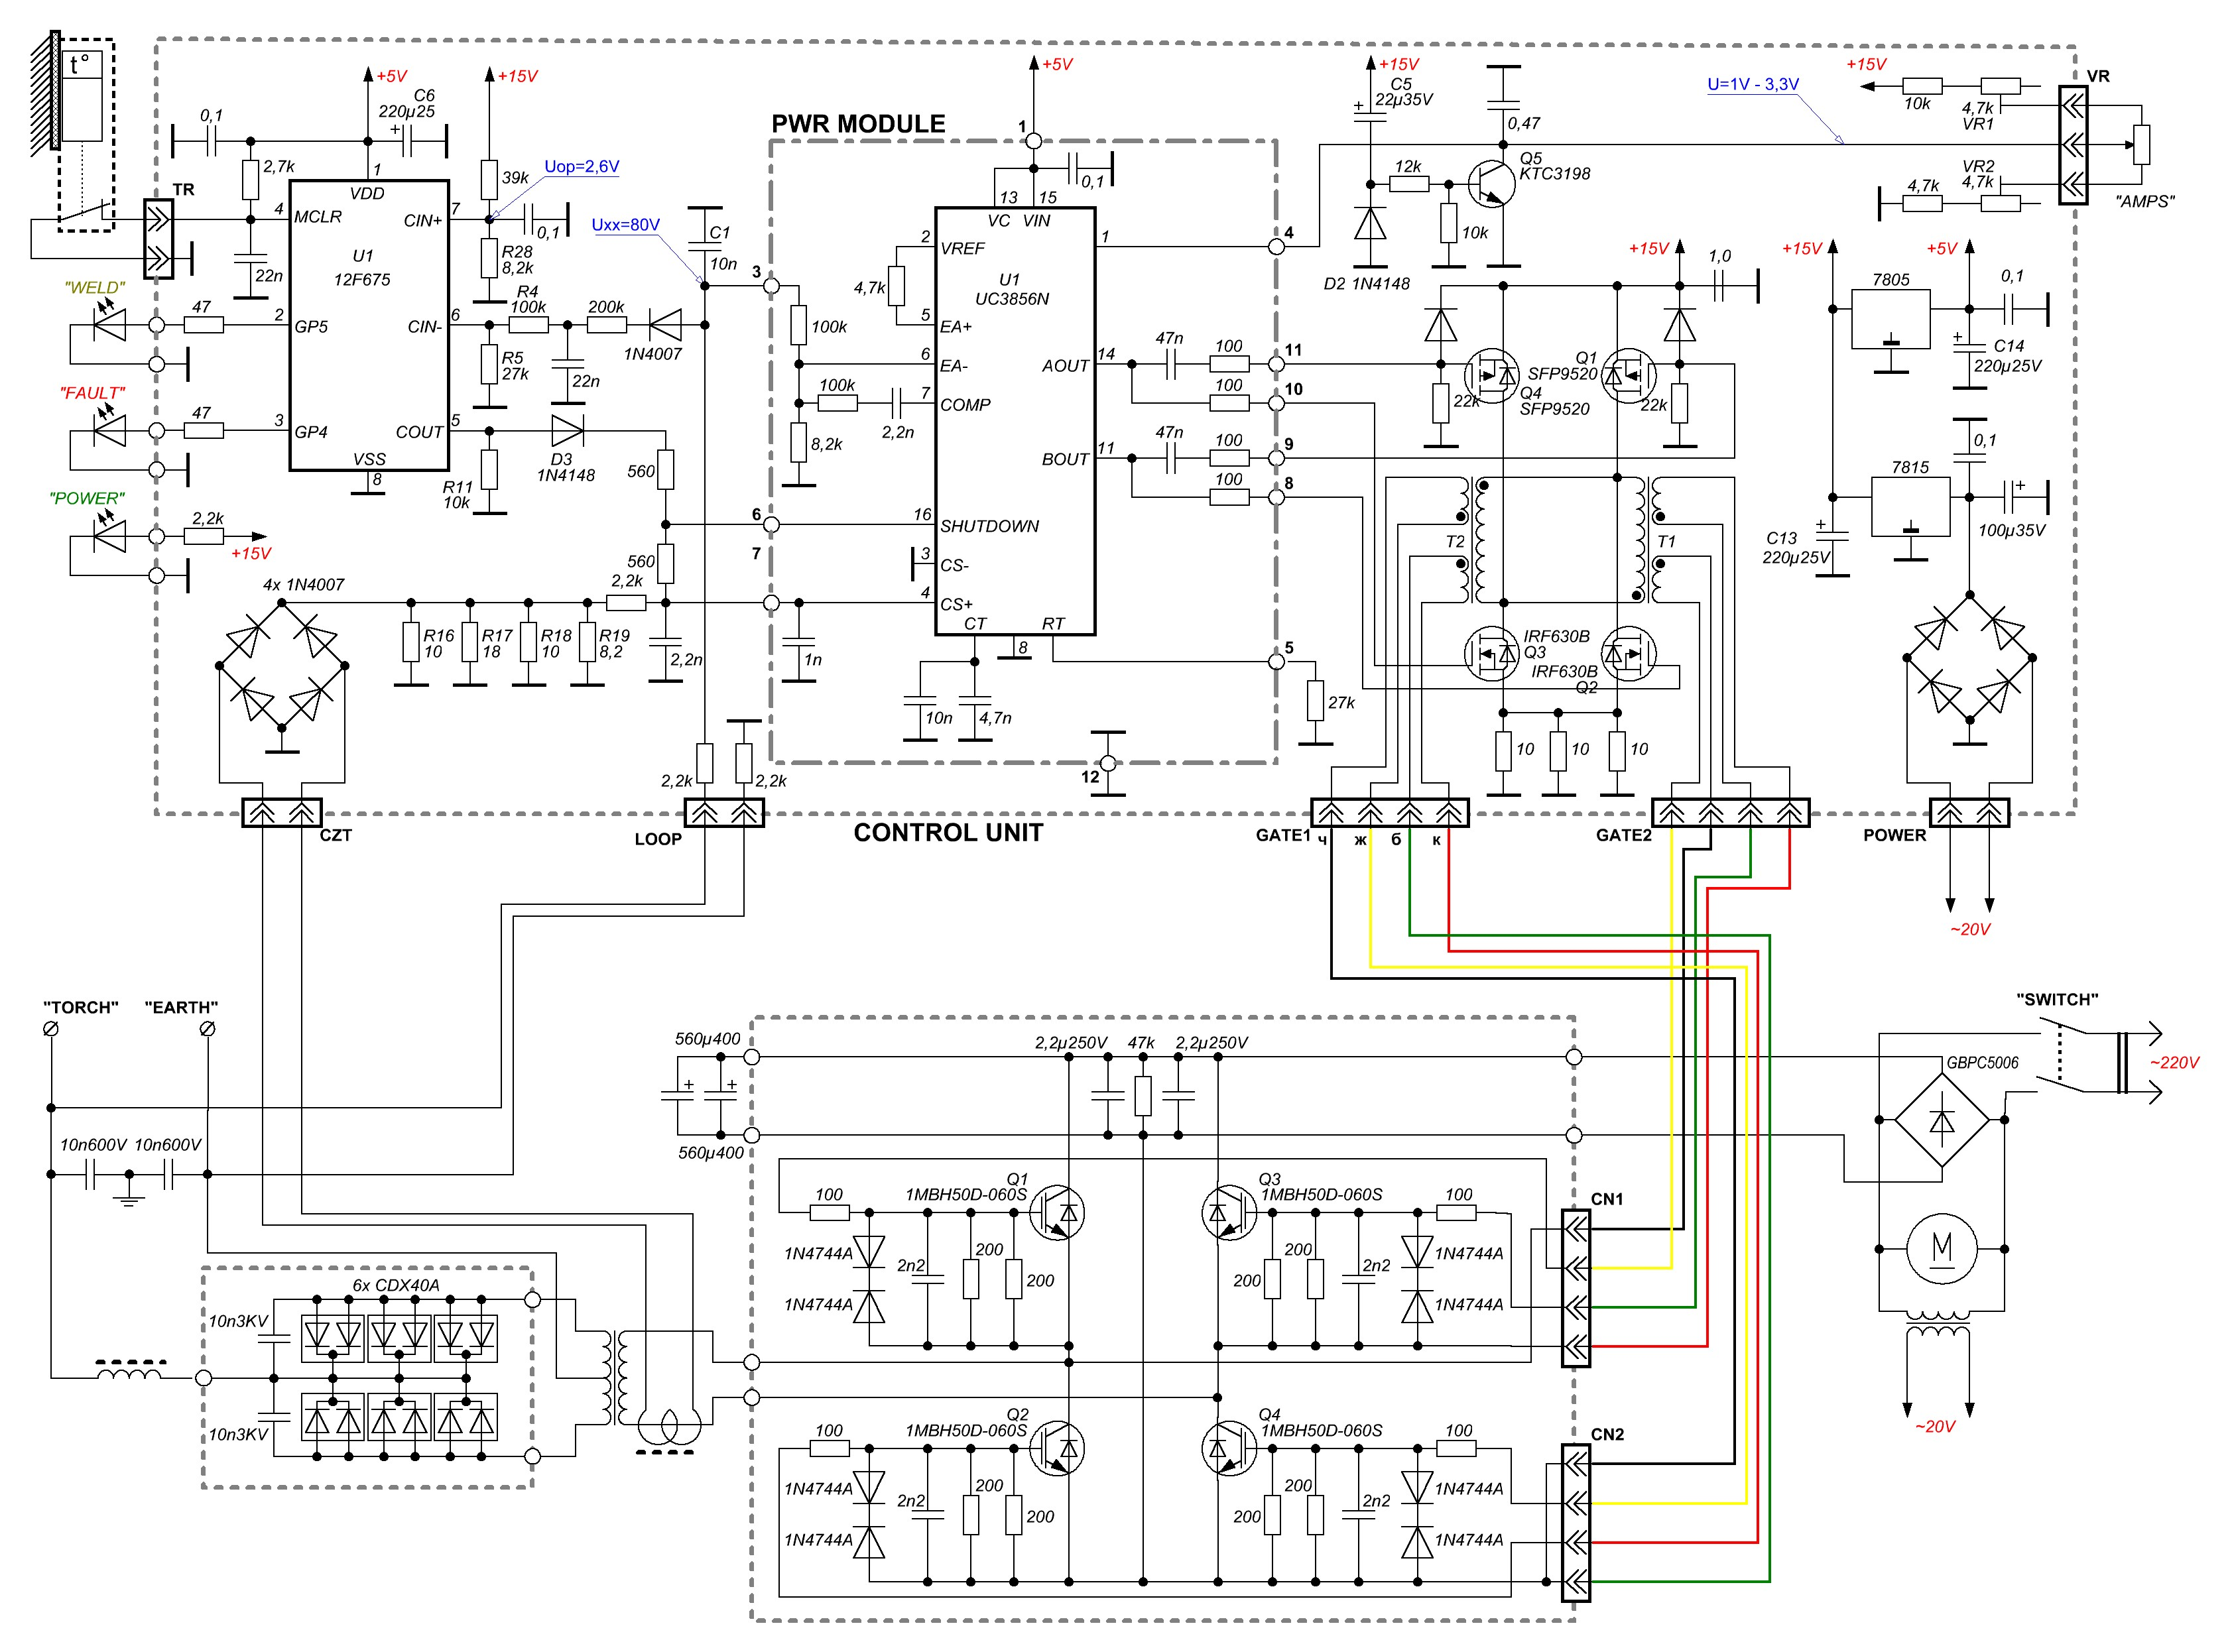 Igbt Mma 160a Arc Welder Welding Inverter Schematic View